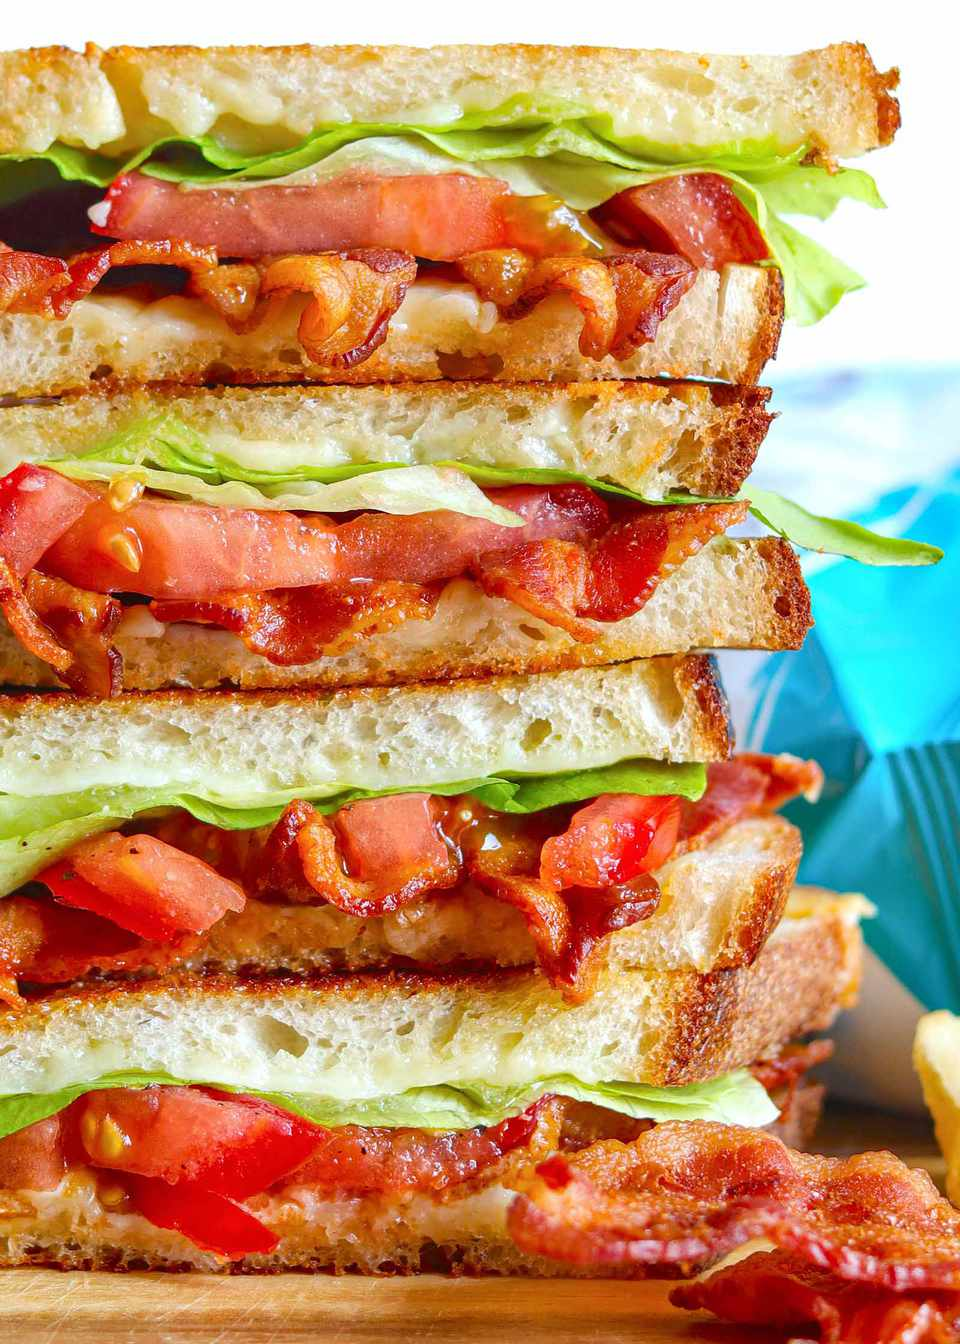 Closeup of crispy bacon, lettuce, and tomato on toasted grilled cheese bread